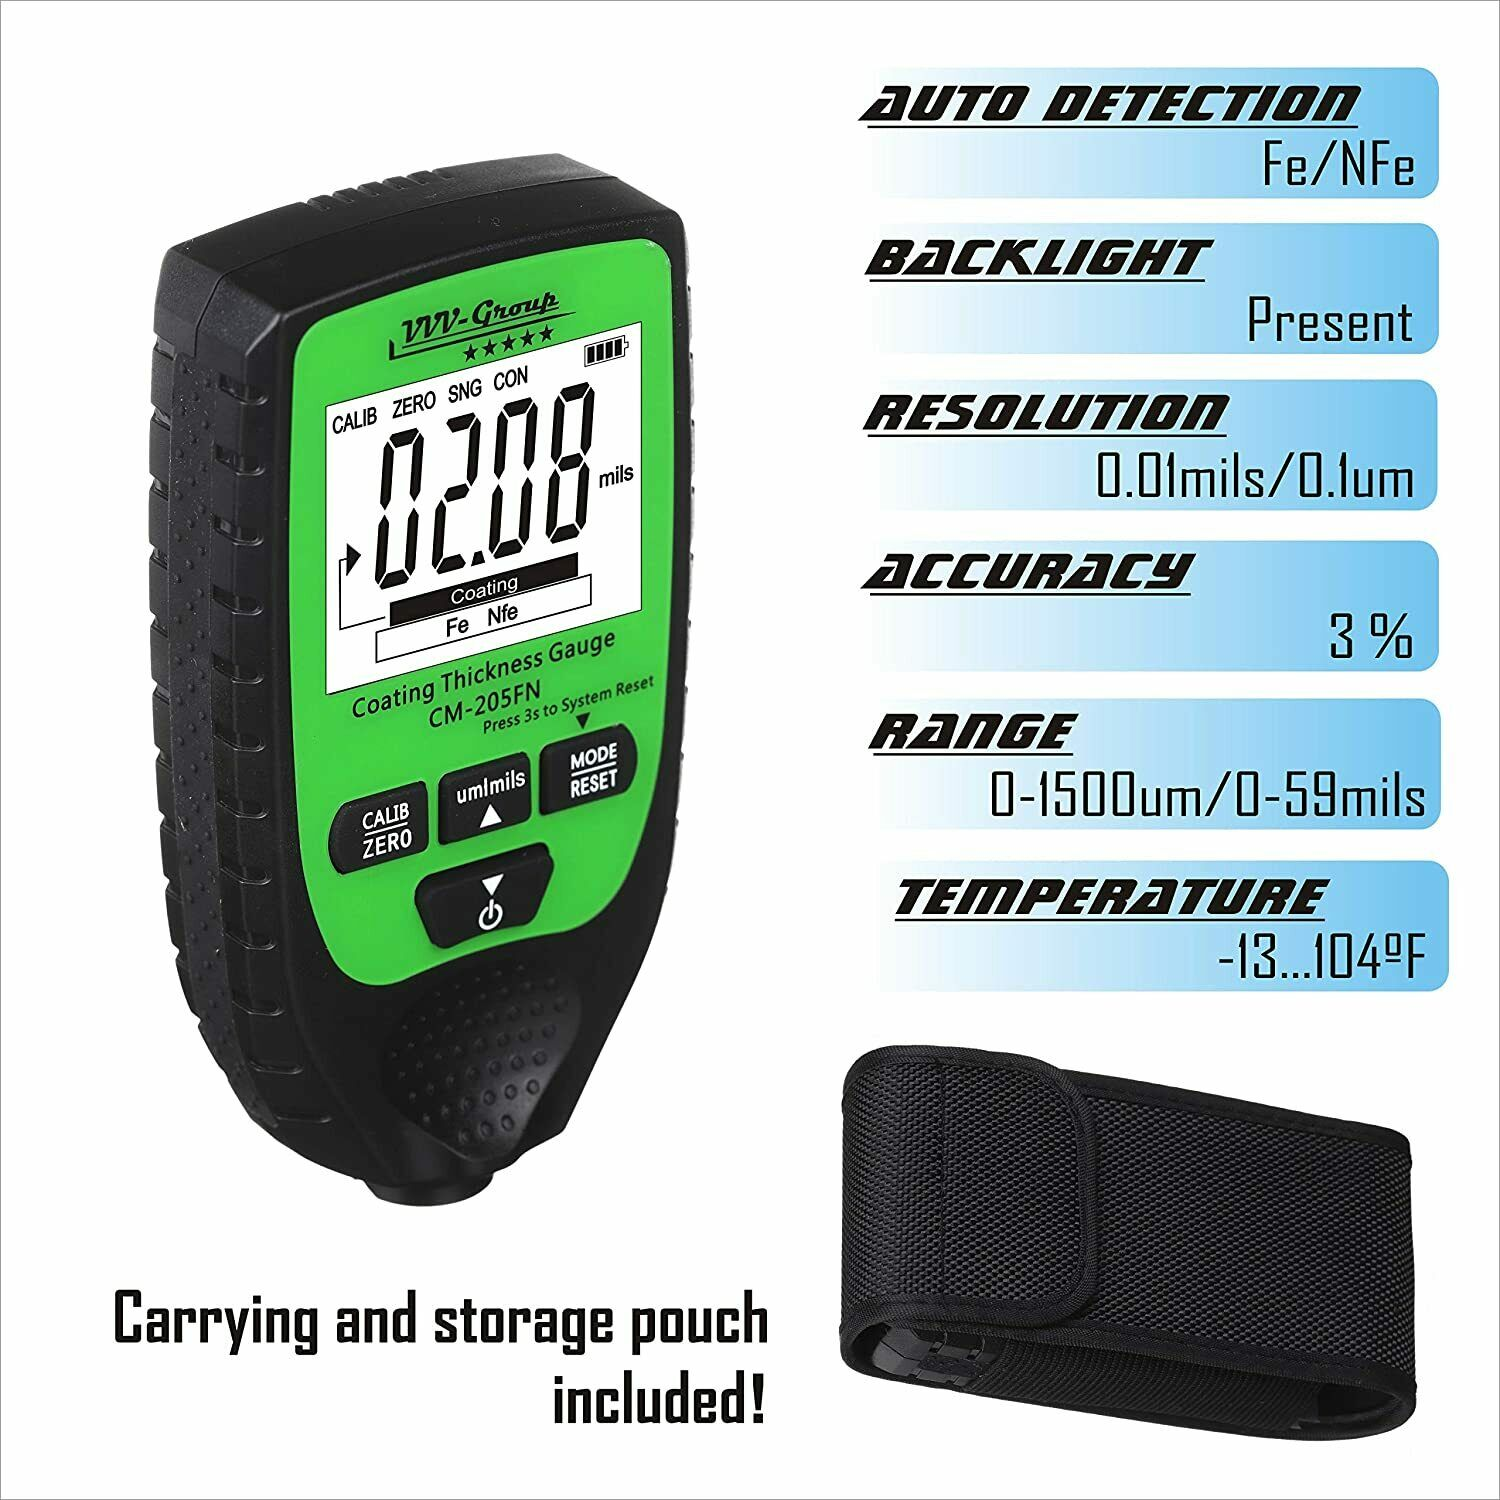 Coating Thickness Gauge CM-205FNBest Digital Meter for Automotive Paint Thick